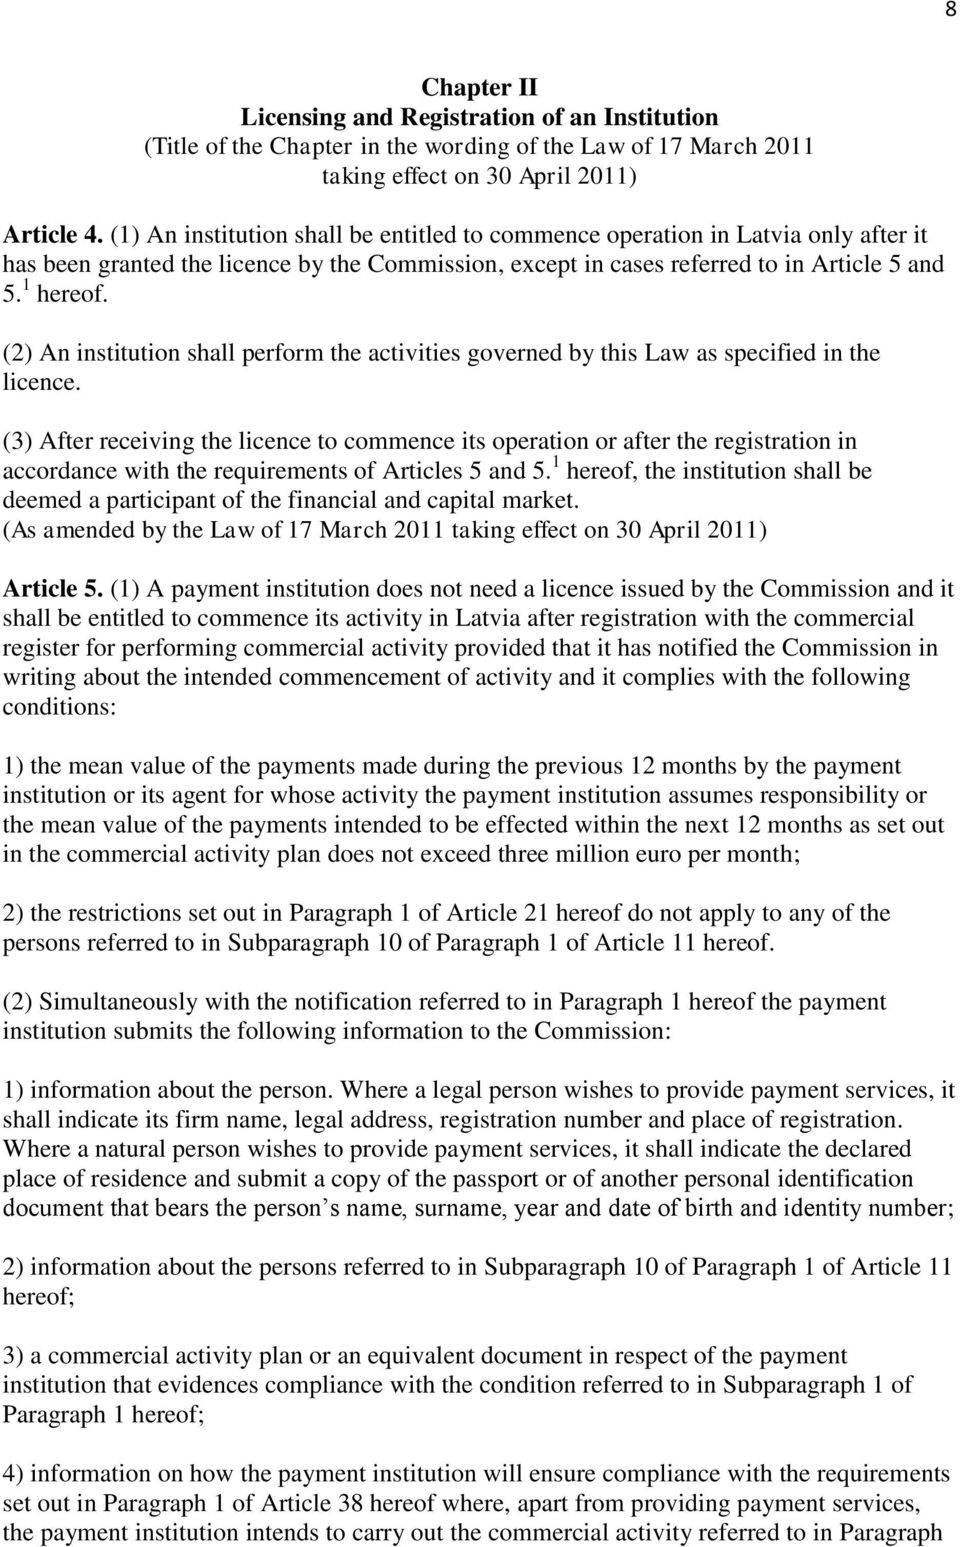 (2) An institution shall perform the activities governed by this Law as specified in the licence.